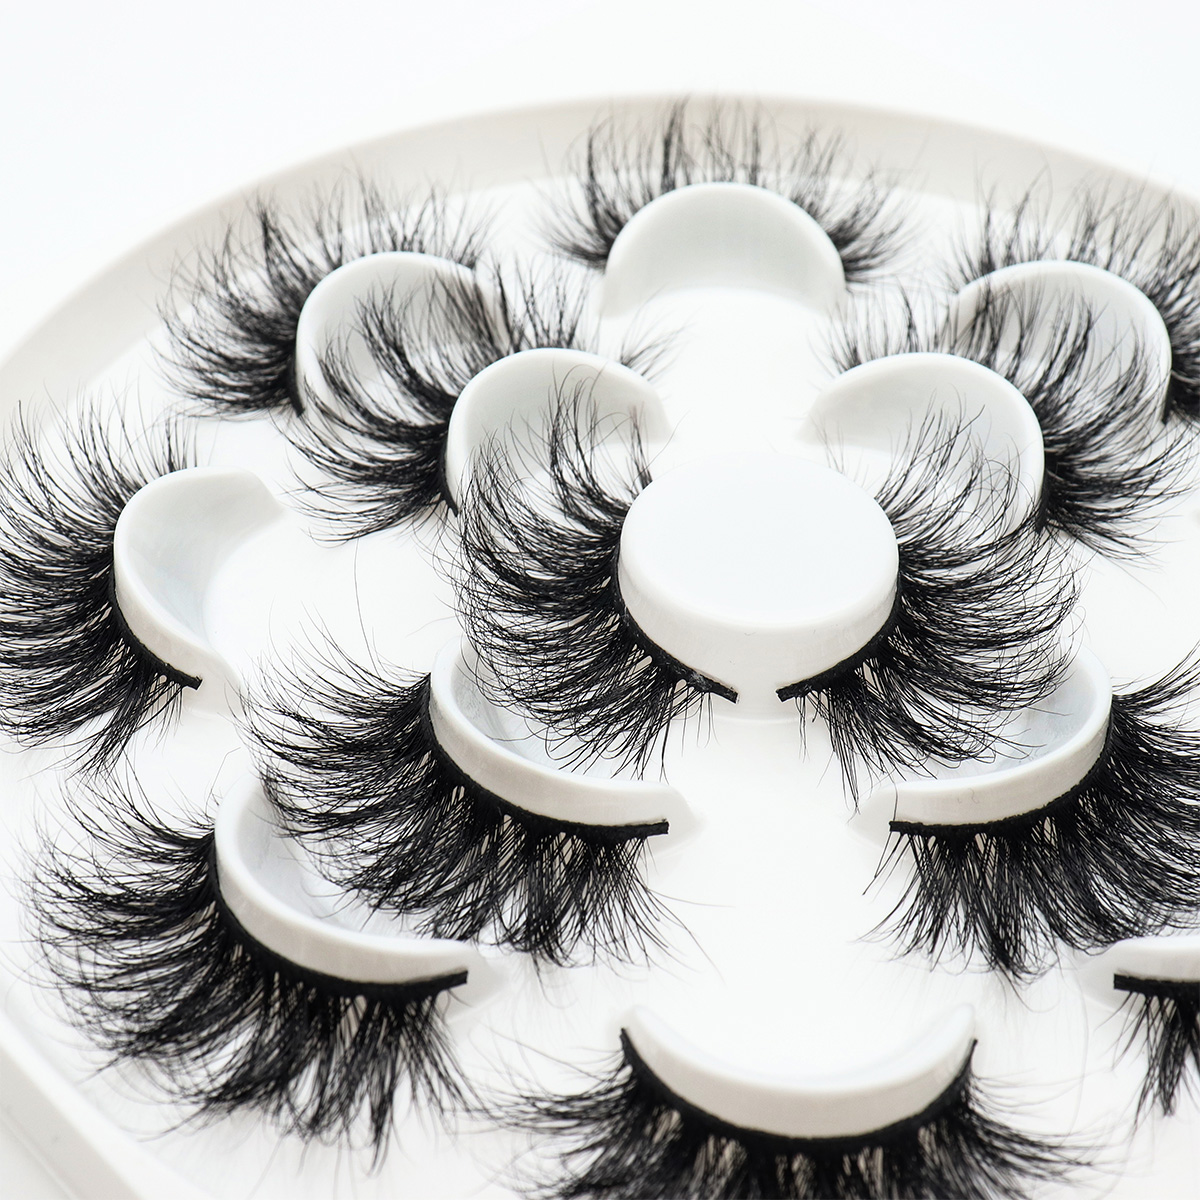 Image 4 - SEXYSHEEP 7pairs 25mm 5D Thick Mink Eyelashes Fake Lashes Long Makeup Mink Lashes Eyelash Extension False Eyelashes Mixed model-in False Eyelashes from Beauty & Health